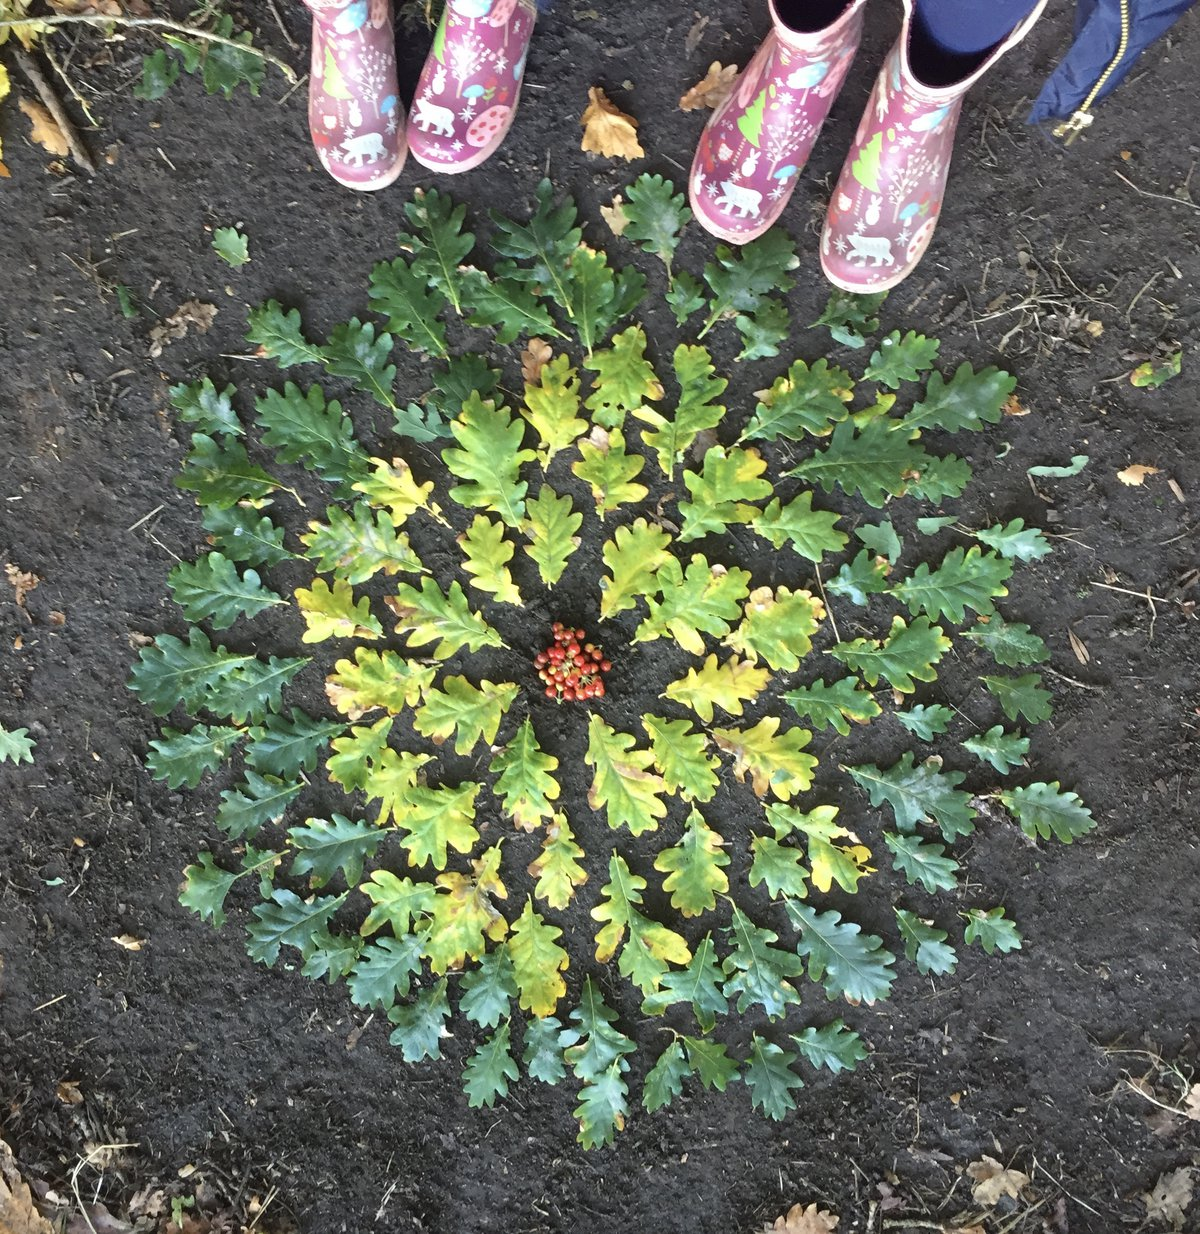 Leaves are arranged in a circular pattern on the ground, with two pairs of Wellington boots visible at the side of the scene